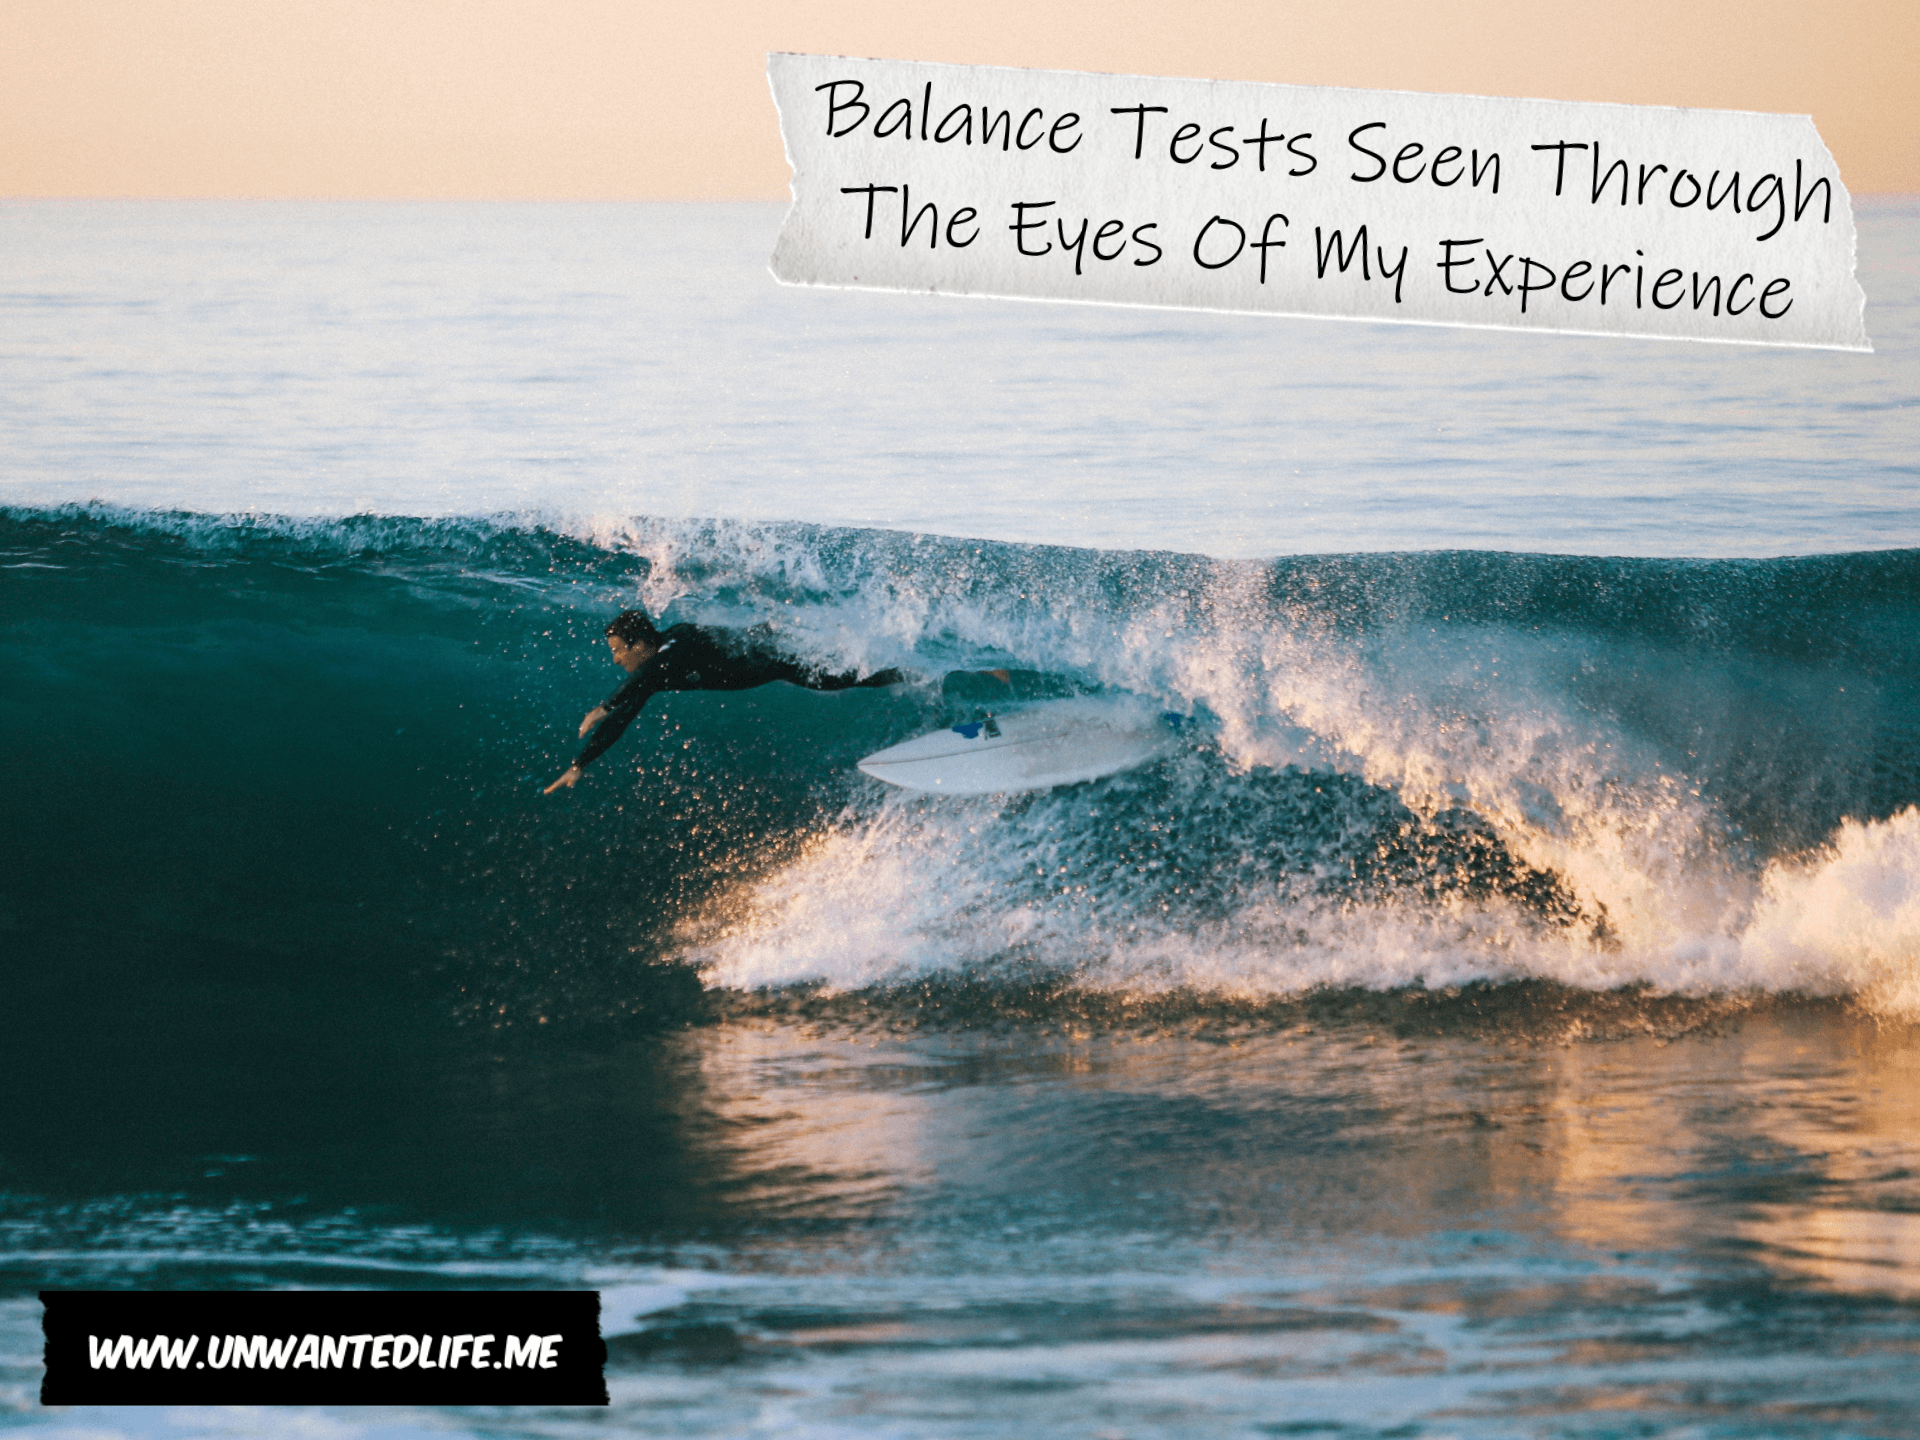 An image of a white male surfer falling off his surfboard with the title of the title of the article - Balance Tests Seen Through The Eyes Of My Experience - in the top right corner